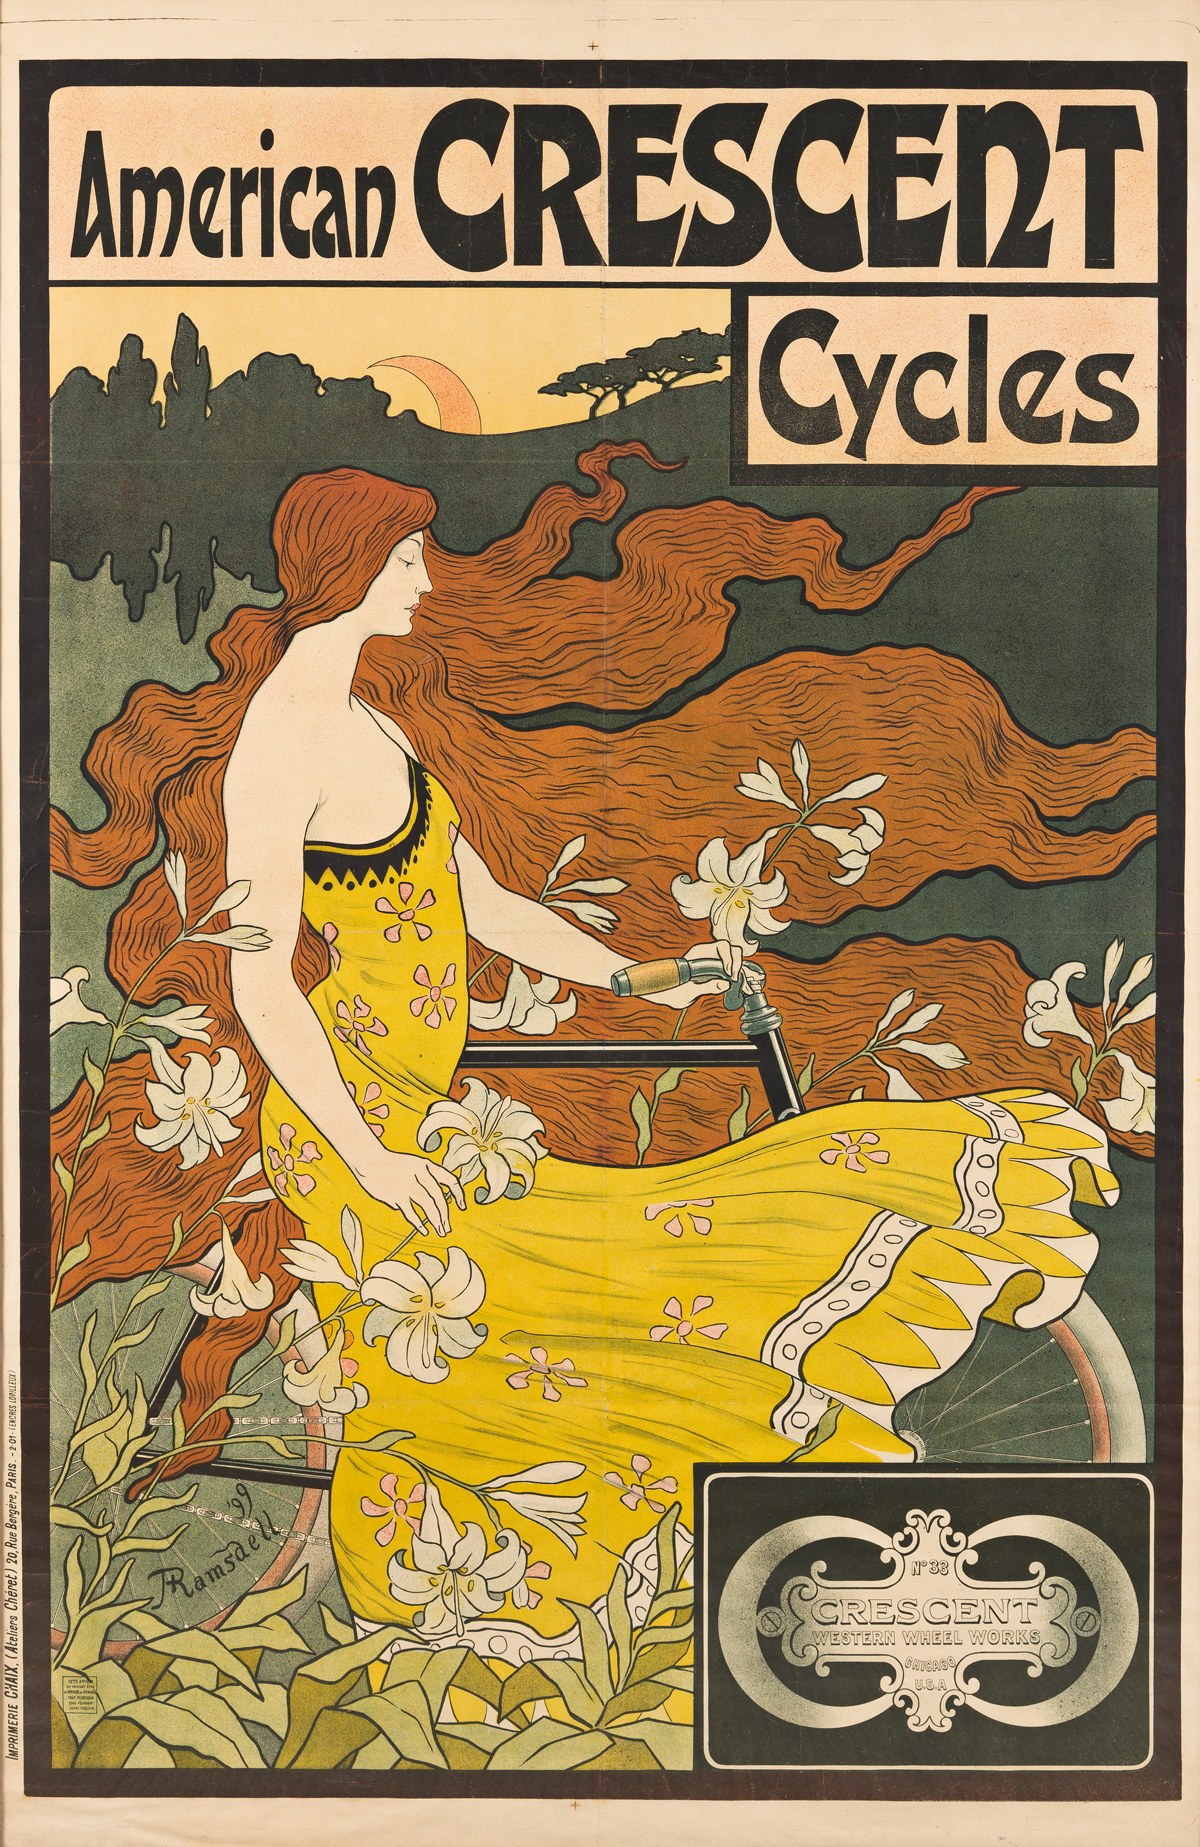 FREDERICK WINTHROP RAMSDELL (1865-1915).  AMERICAN CRESCENT CYCLES. 1899. 62½x41 inches, 158¾x104 cm. Chaix, Paris.